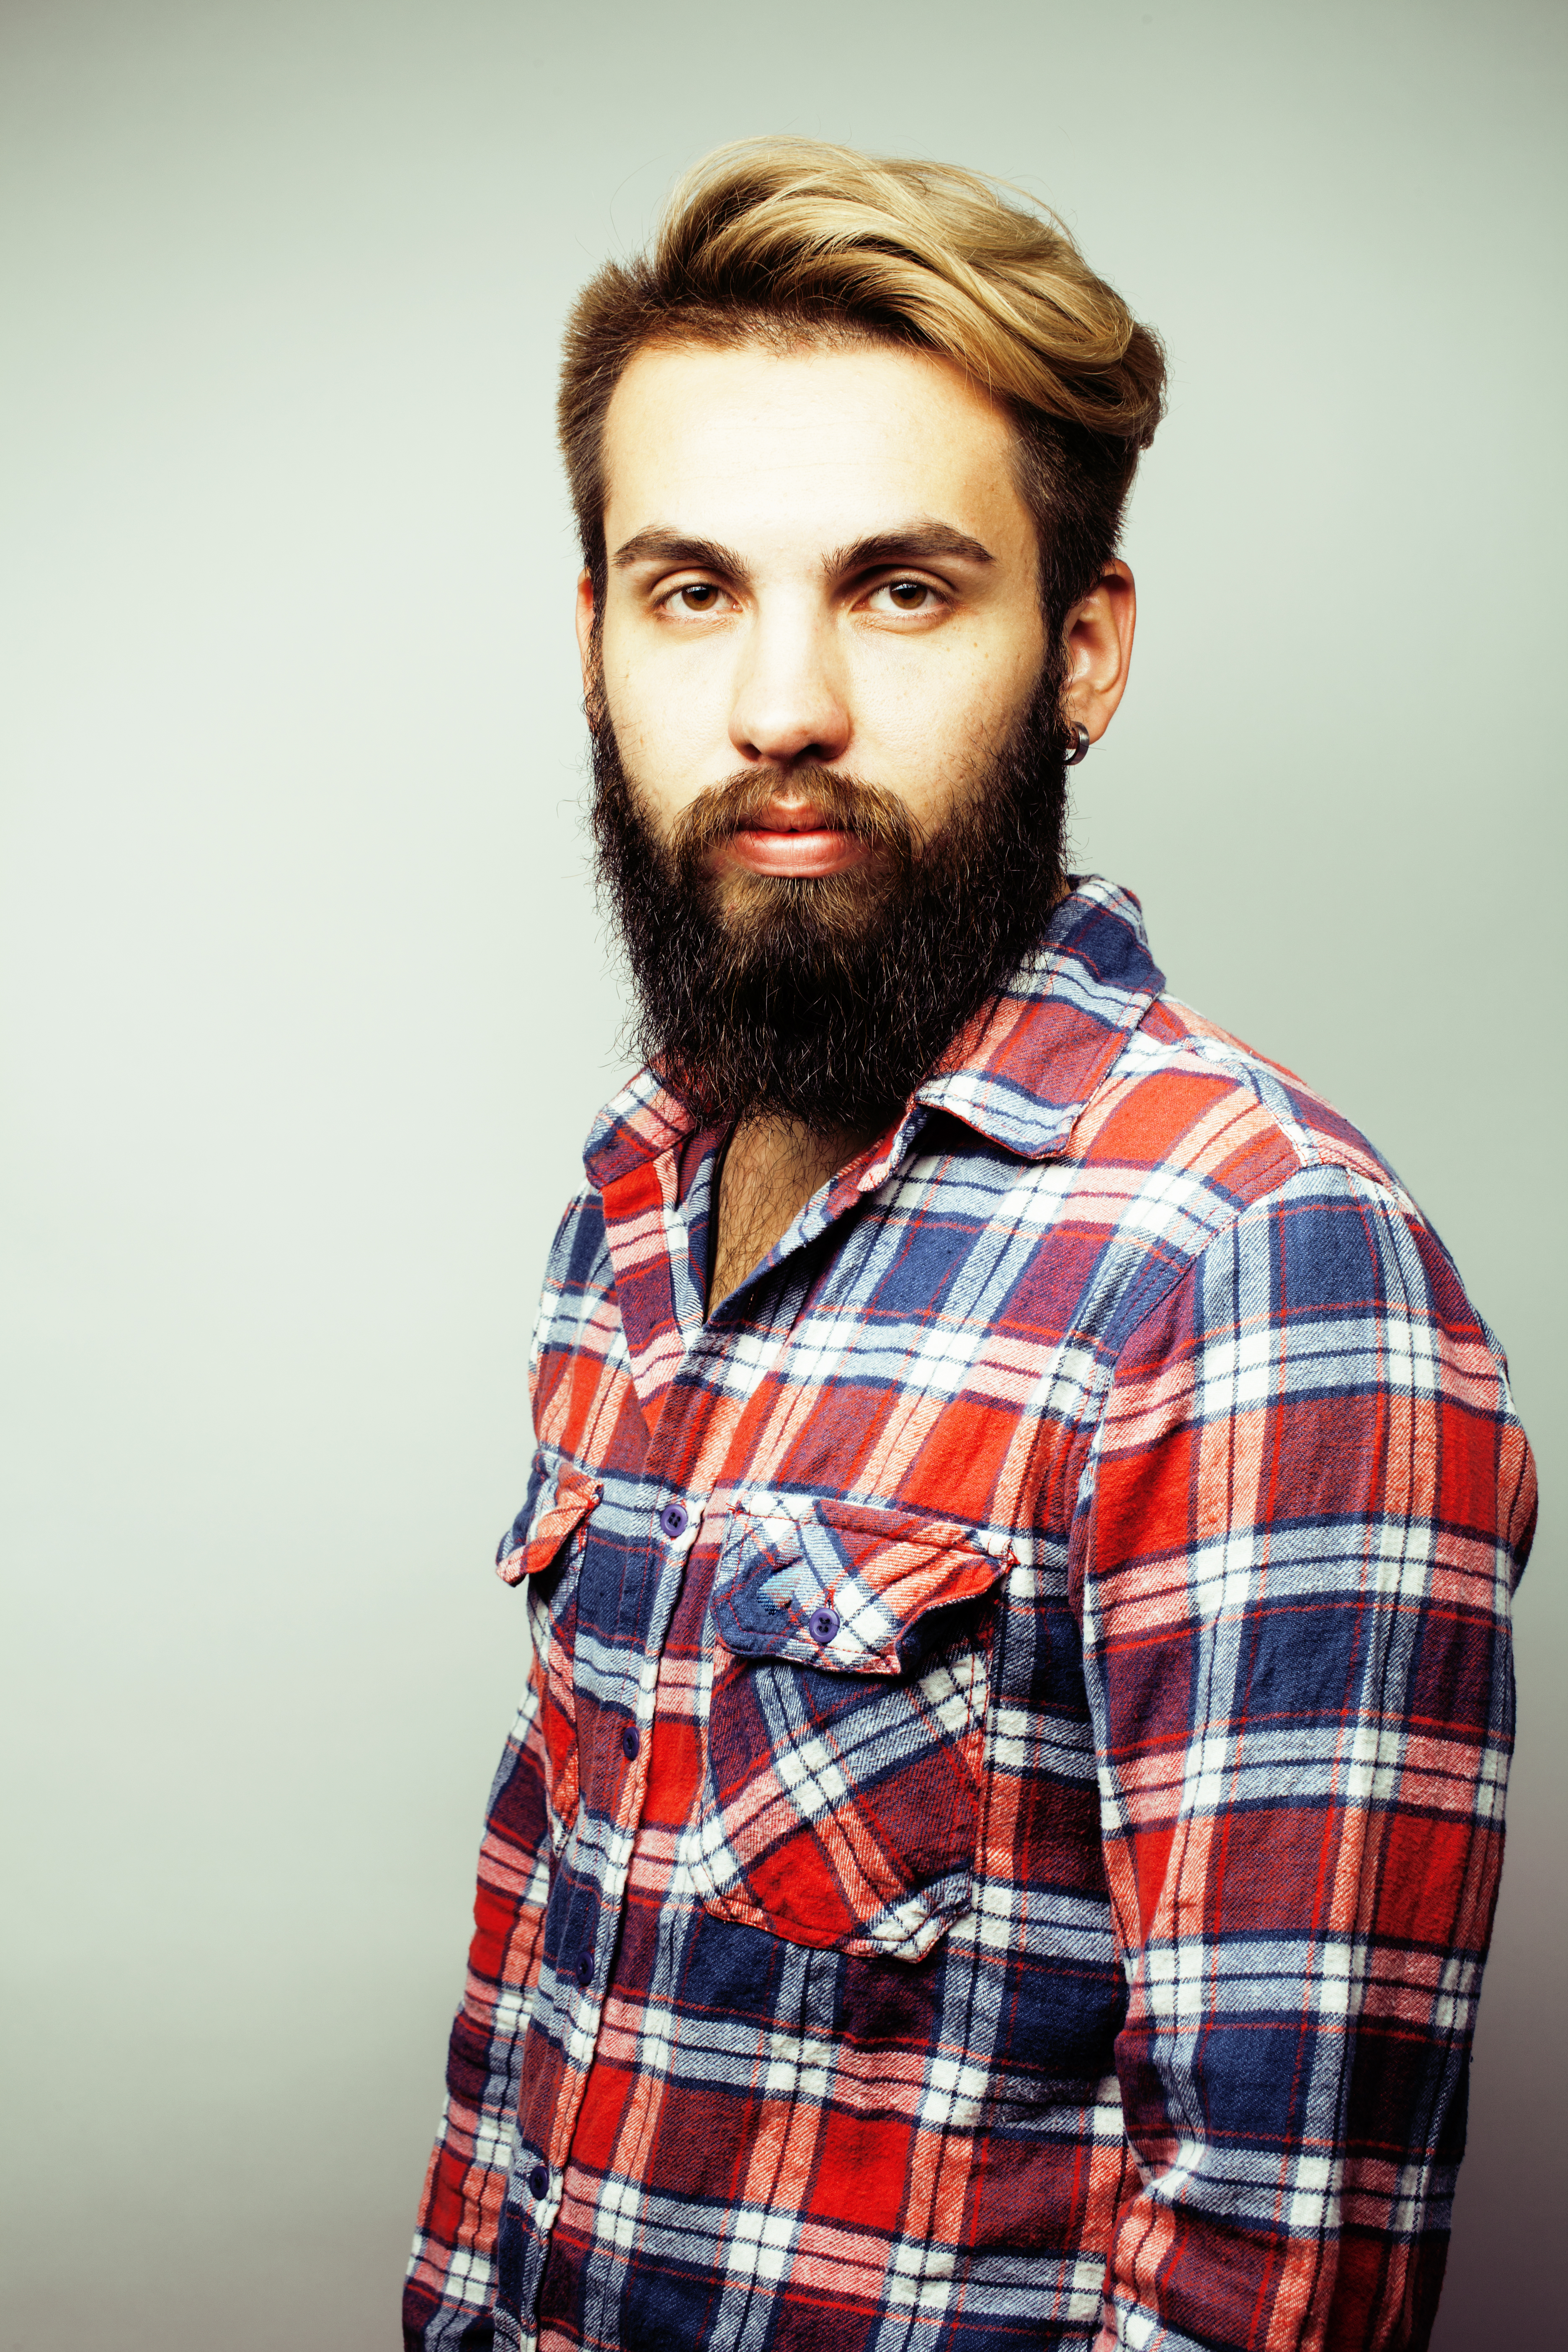 cb486b42 portrait of young bearded hipster guy smiling on white background close up,  brutal man, lifestyle people concept